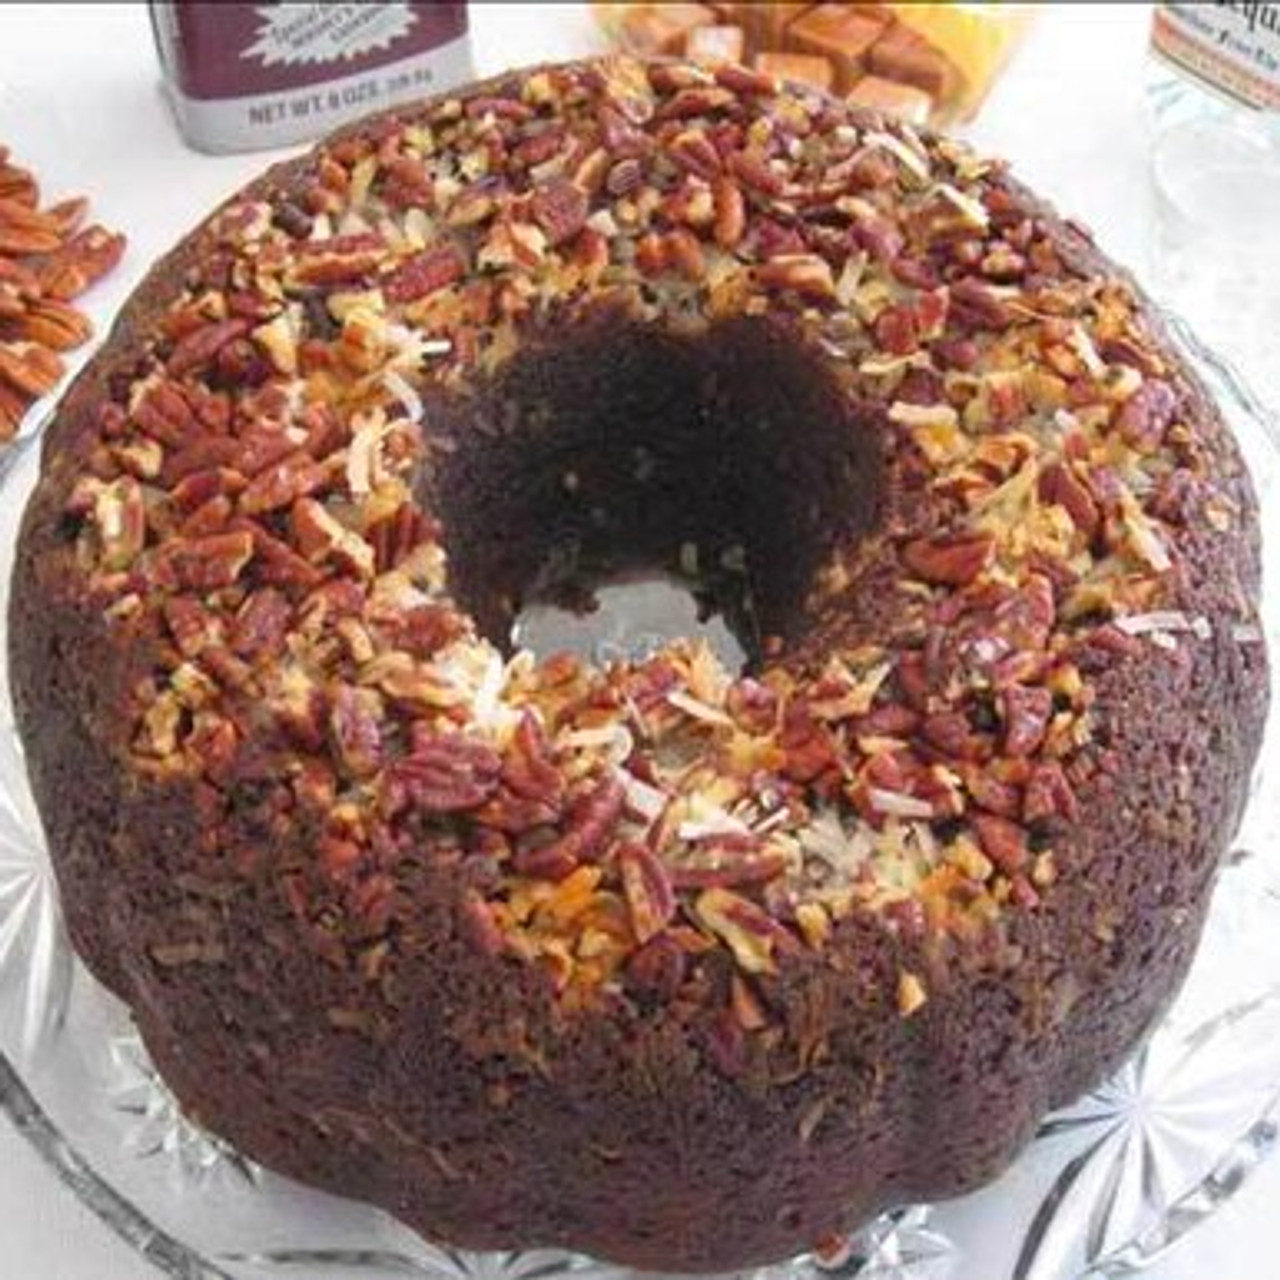 German Chocolate Cake with Caramel Vodka